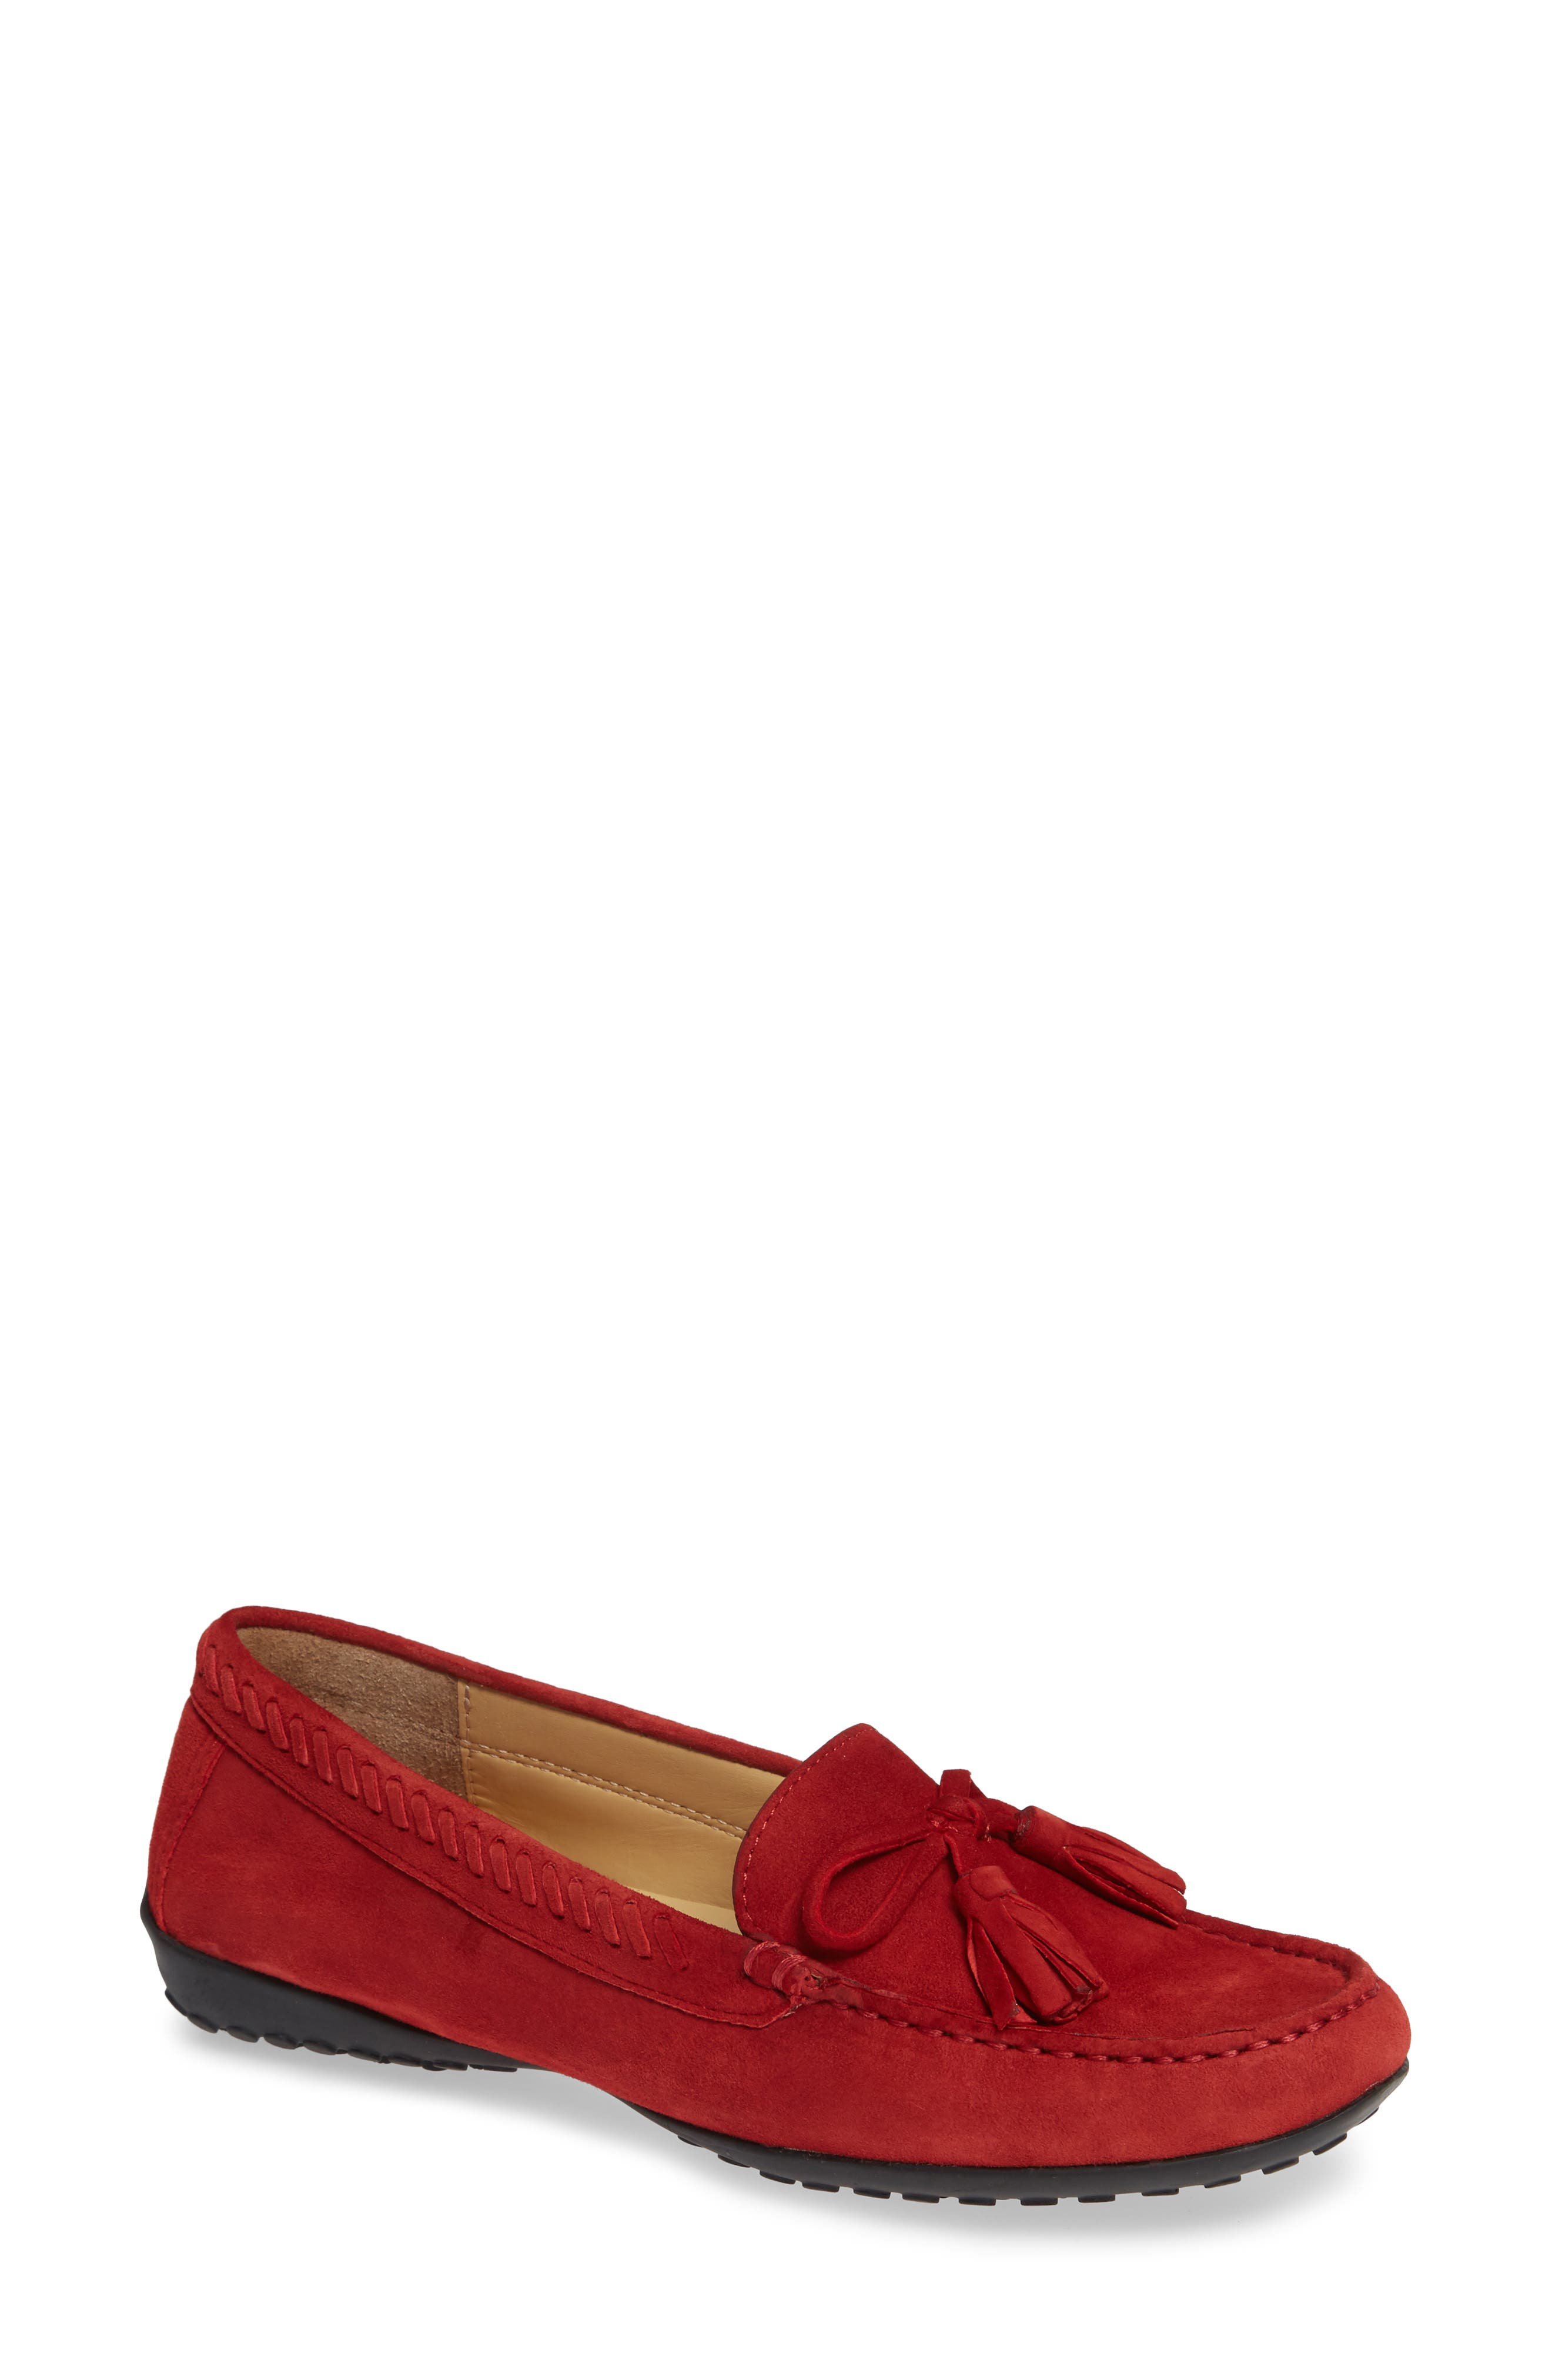 Acajou Driving Moccasin,                         Main,                         color, Red Suede